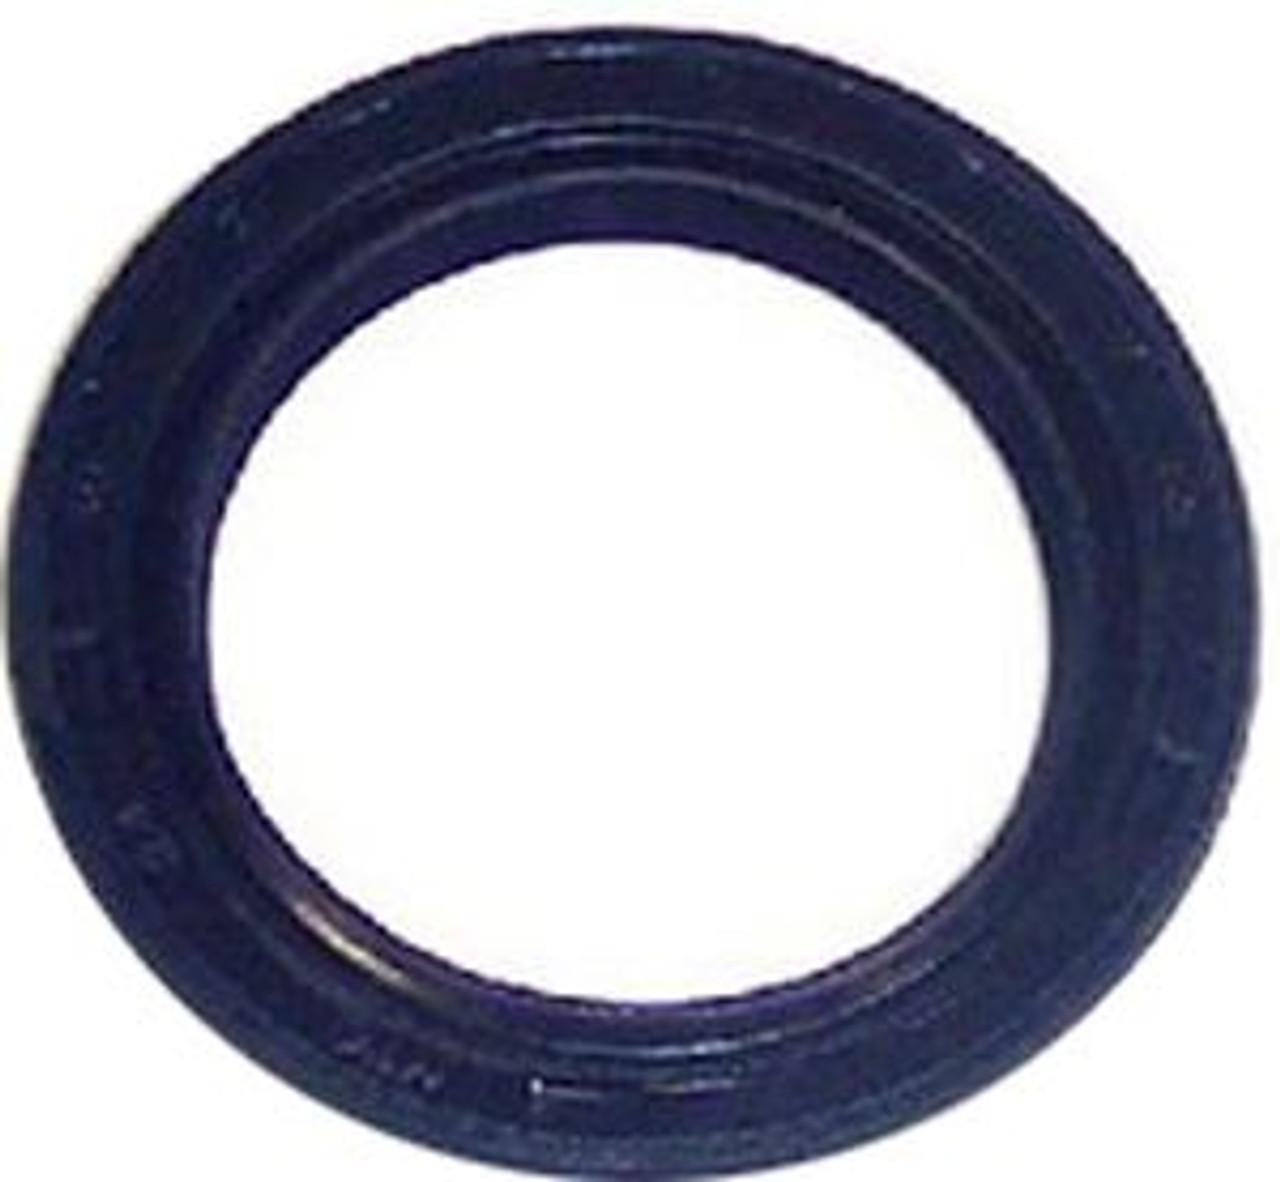 1985 Nissan 200SX 1.8L Engine Camshaft Seal CS623 -154